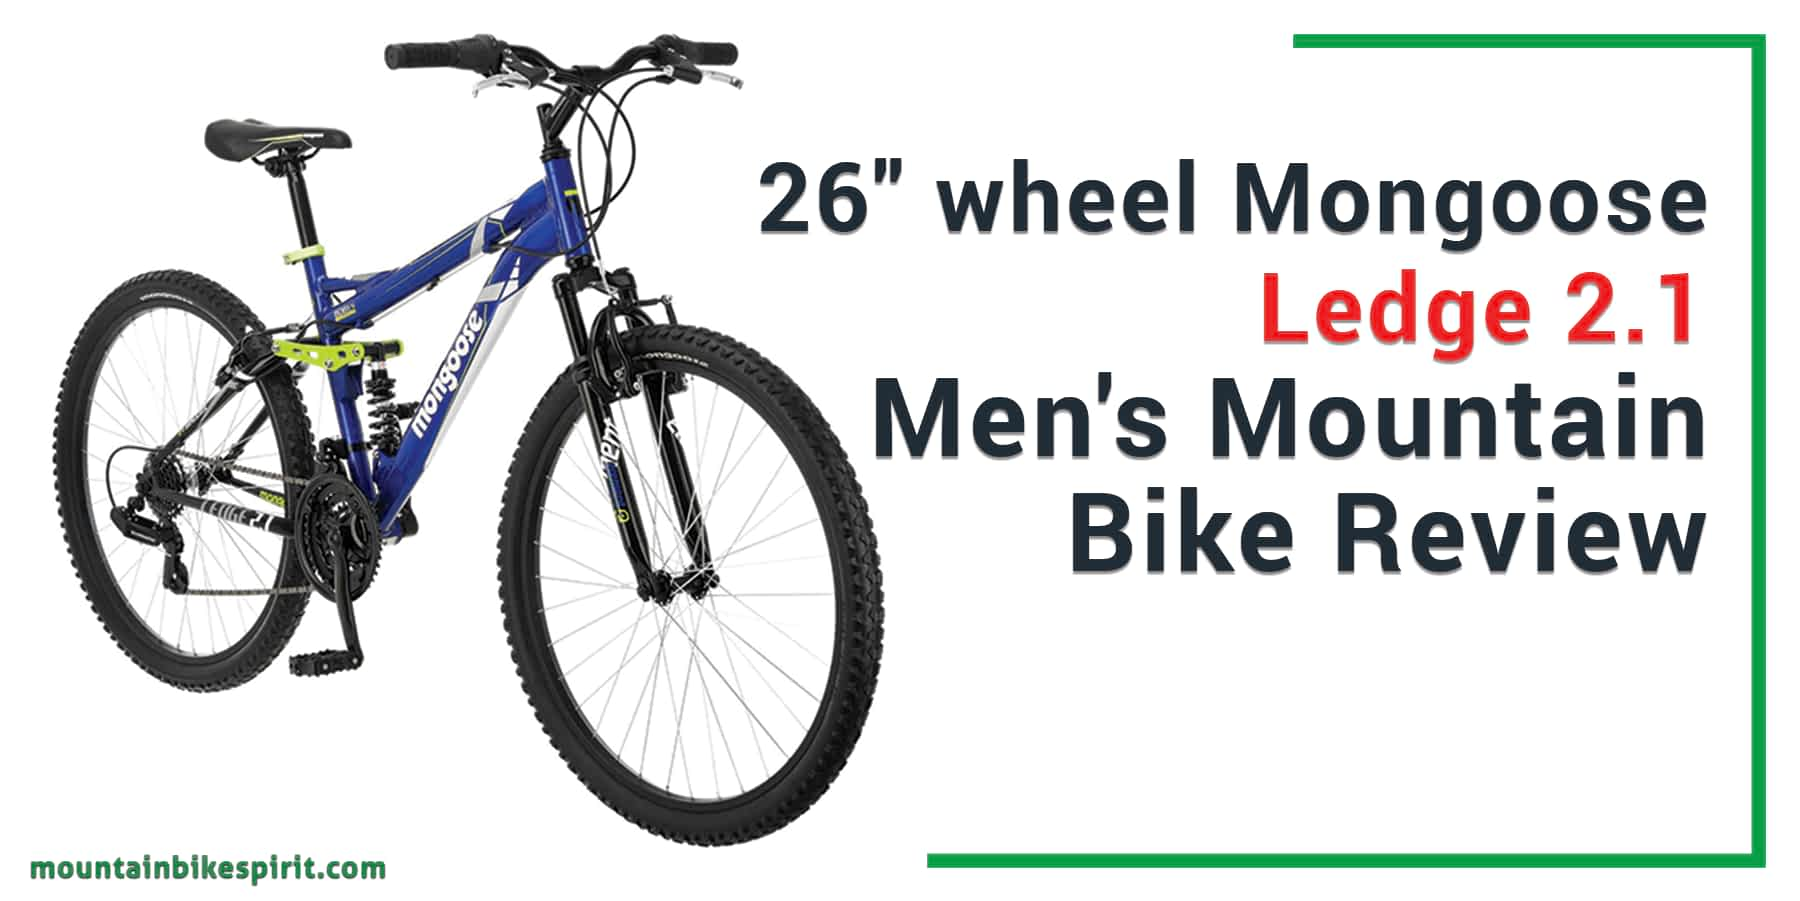 Mongoose-Ledge-2.1-Mens-Mountain-Bike-Review